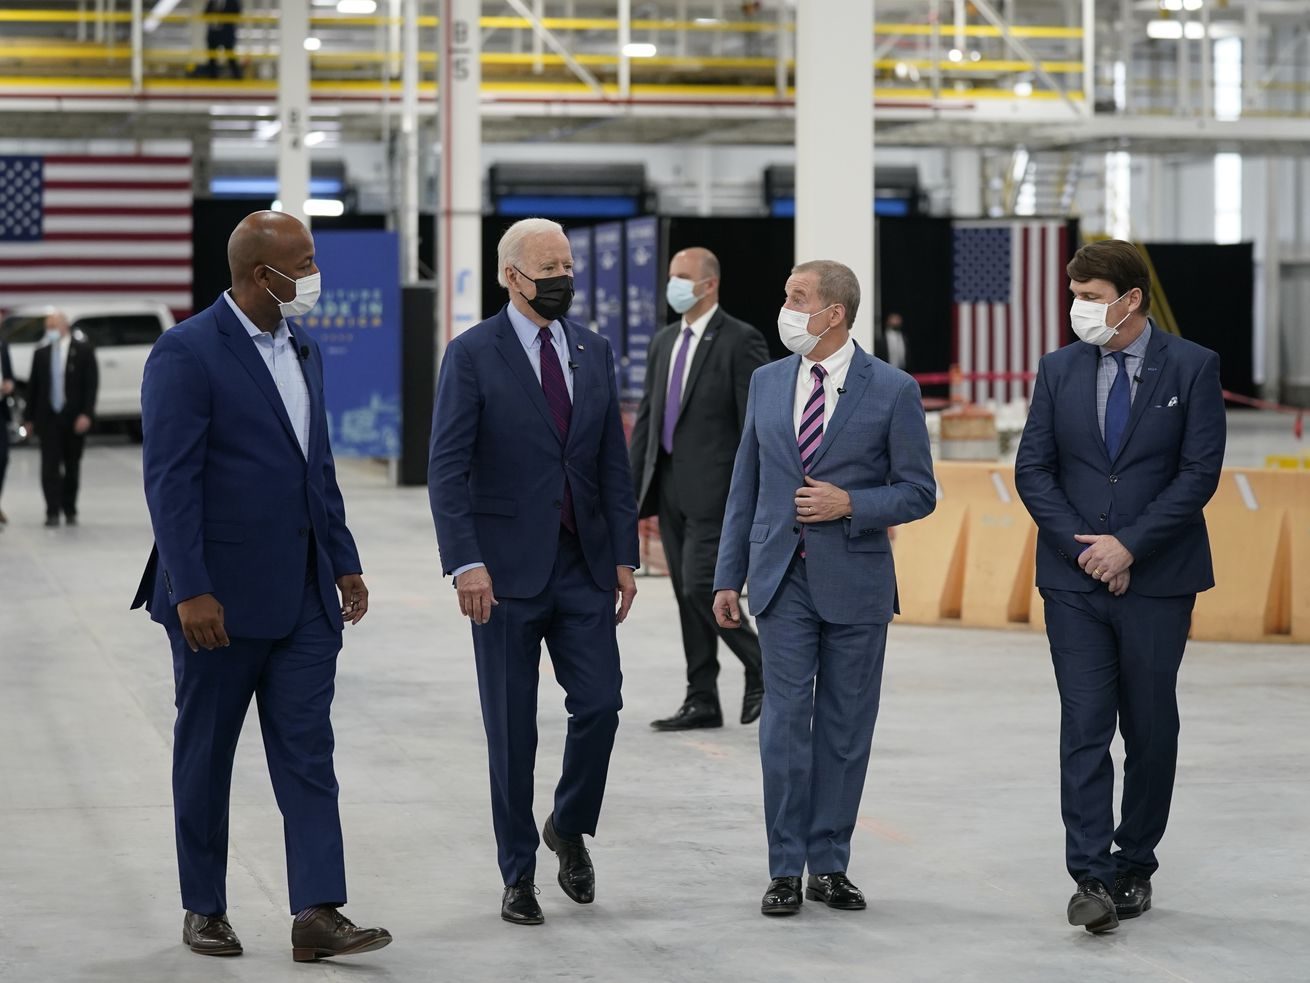 """President Joe Biden tours the Ford Rouge EV Center, Tuesday, May 18, 2021, in Dearborn, Mich. From left, Corey Williams, plant manager, Biden, William """"Bill"""" Ford, Jr., Executive Chairman, Ford Motor Company and Jim Farley, CEO, Ford Motor Company."""